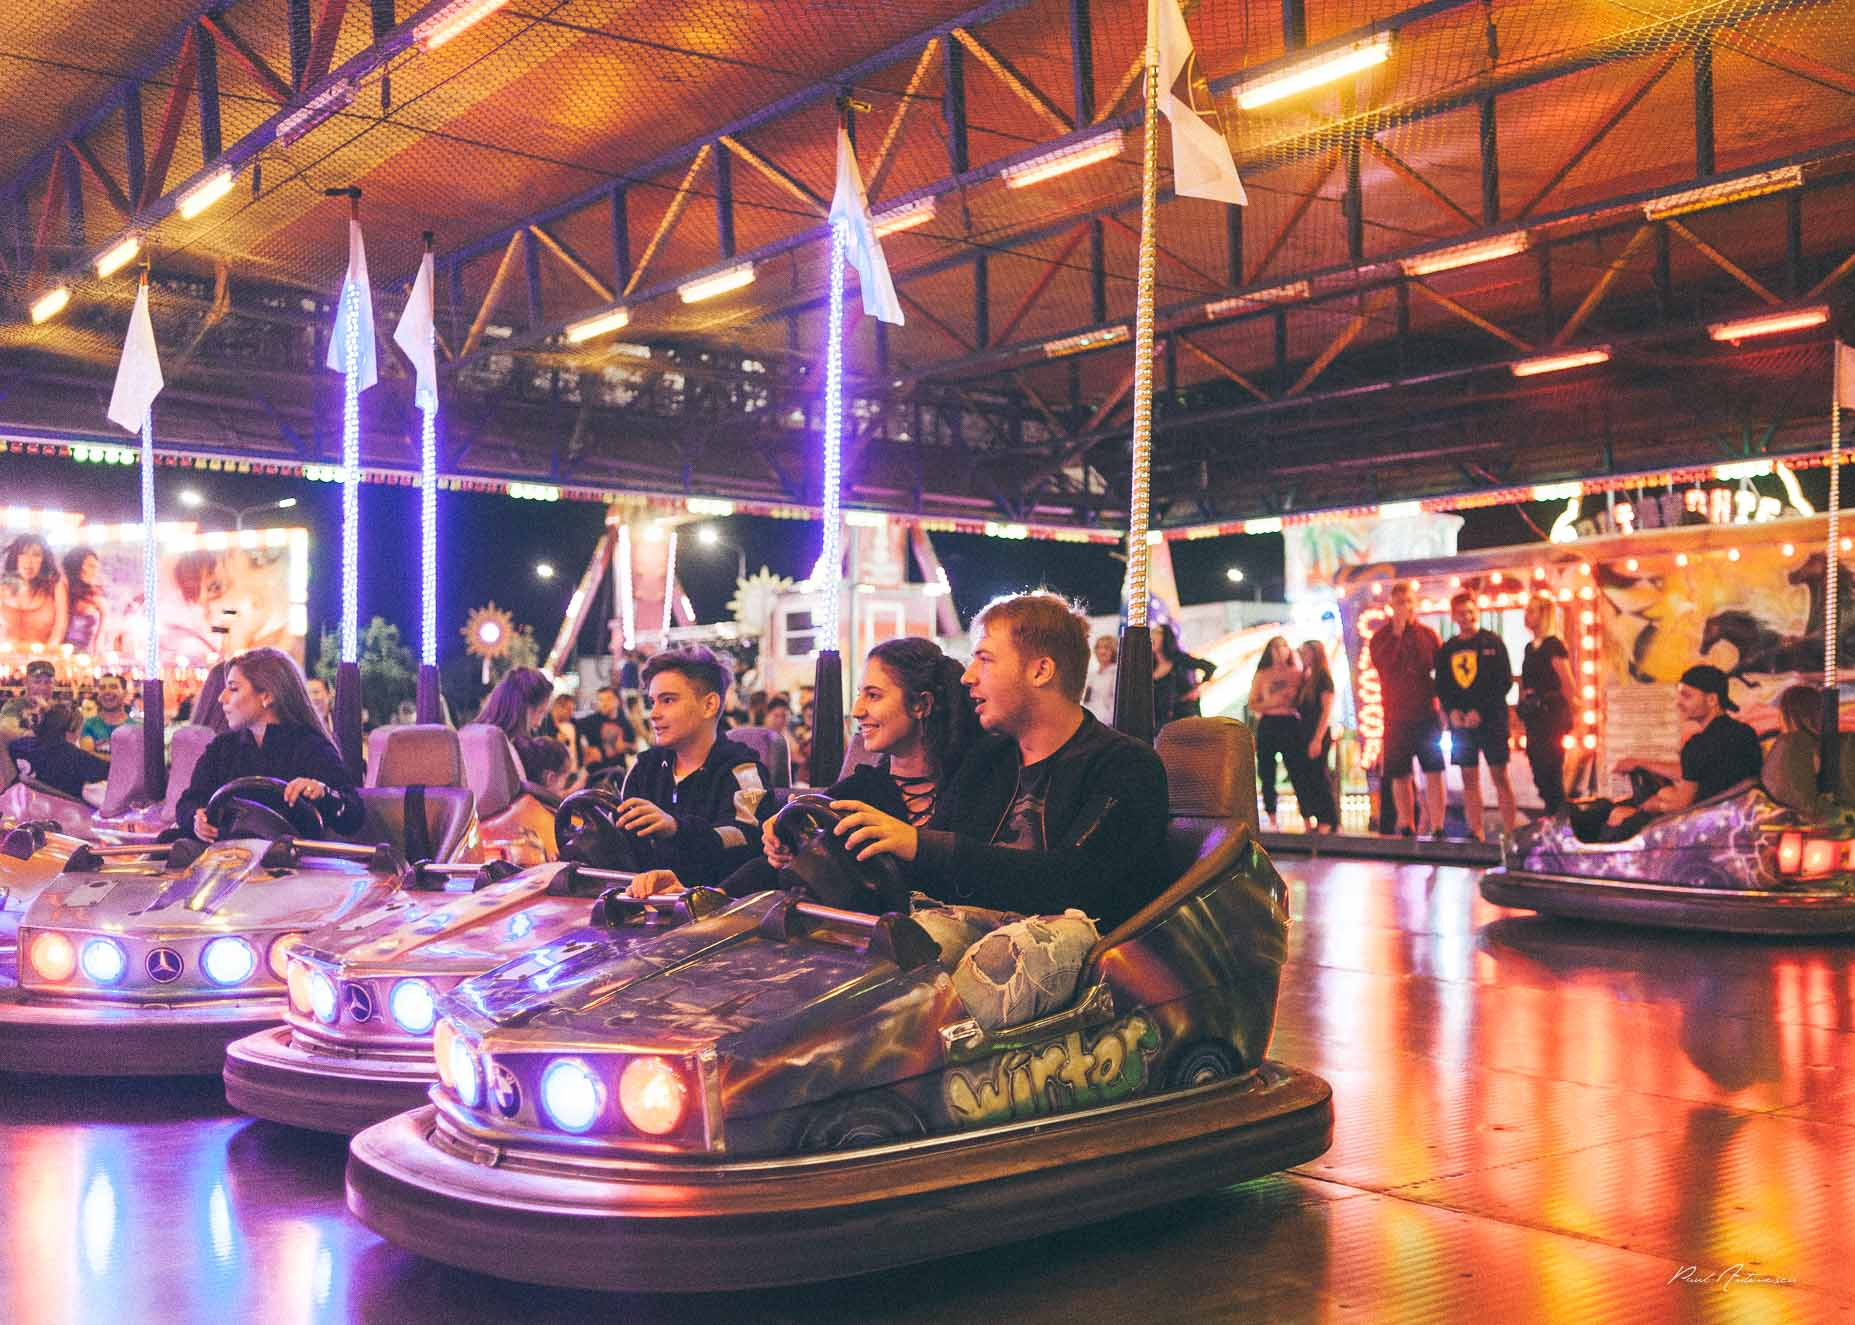 People in bumper cars at the assessment park